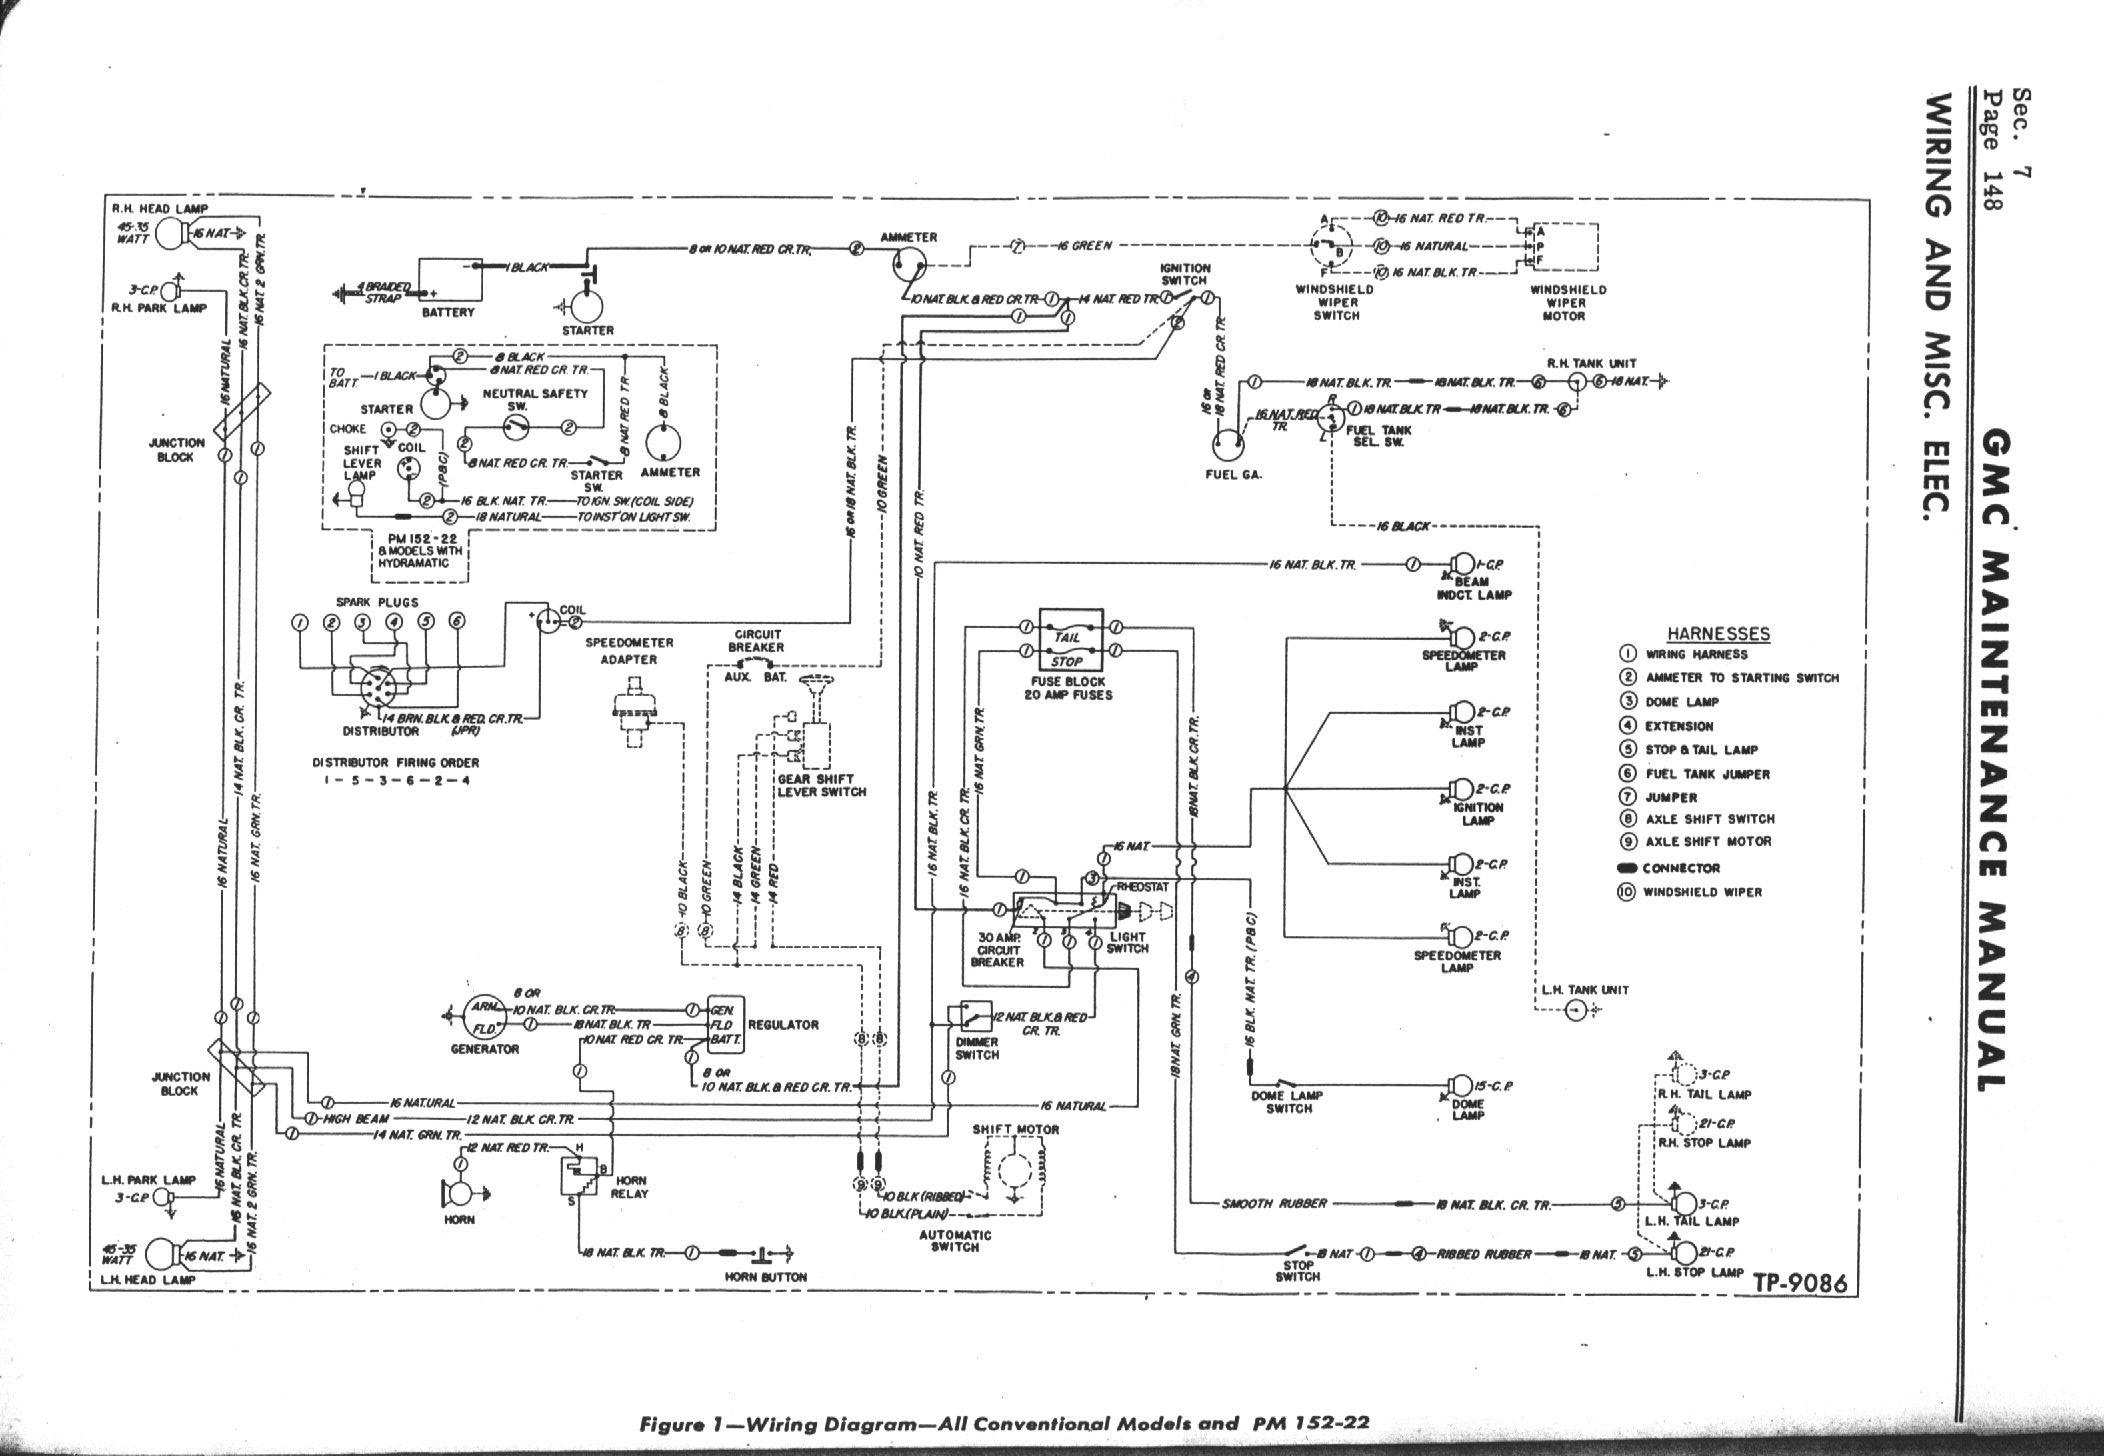 GMCWIRE_AllModels oldgmctrucks com technical stuff about old gmcs rolls royce silver shadow wiring diagram at pacquiaovsvargaslive.co